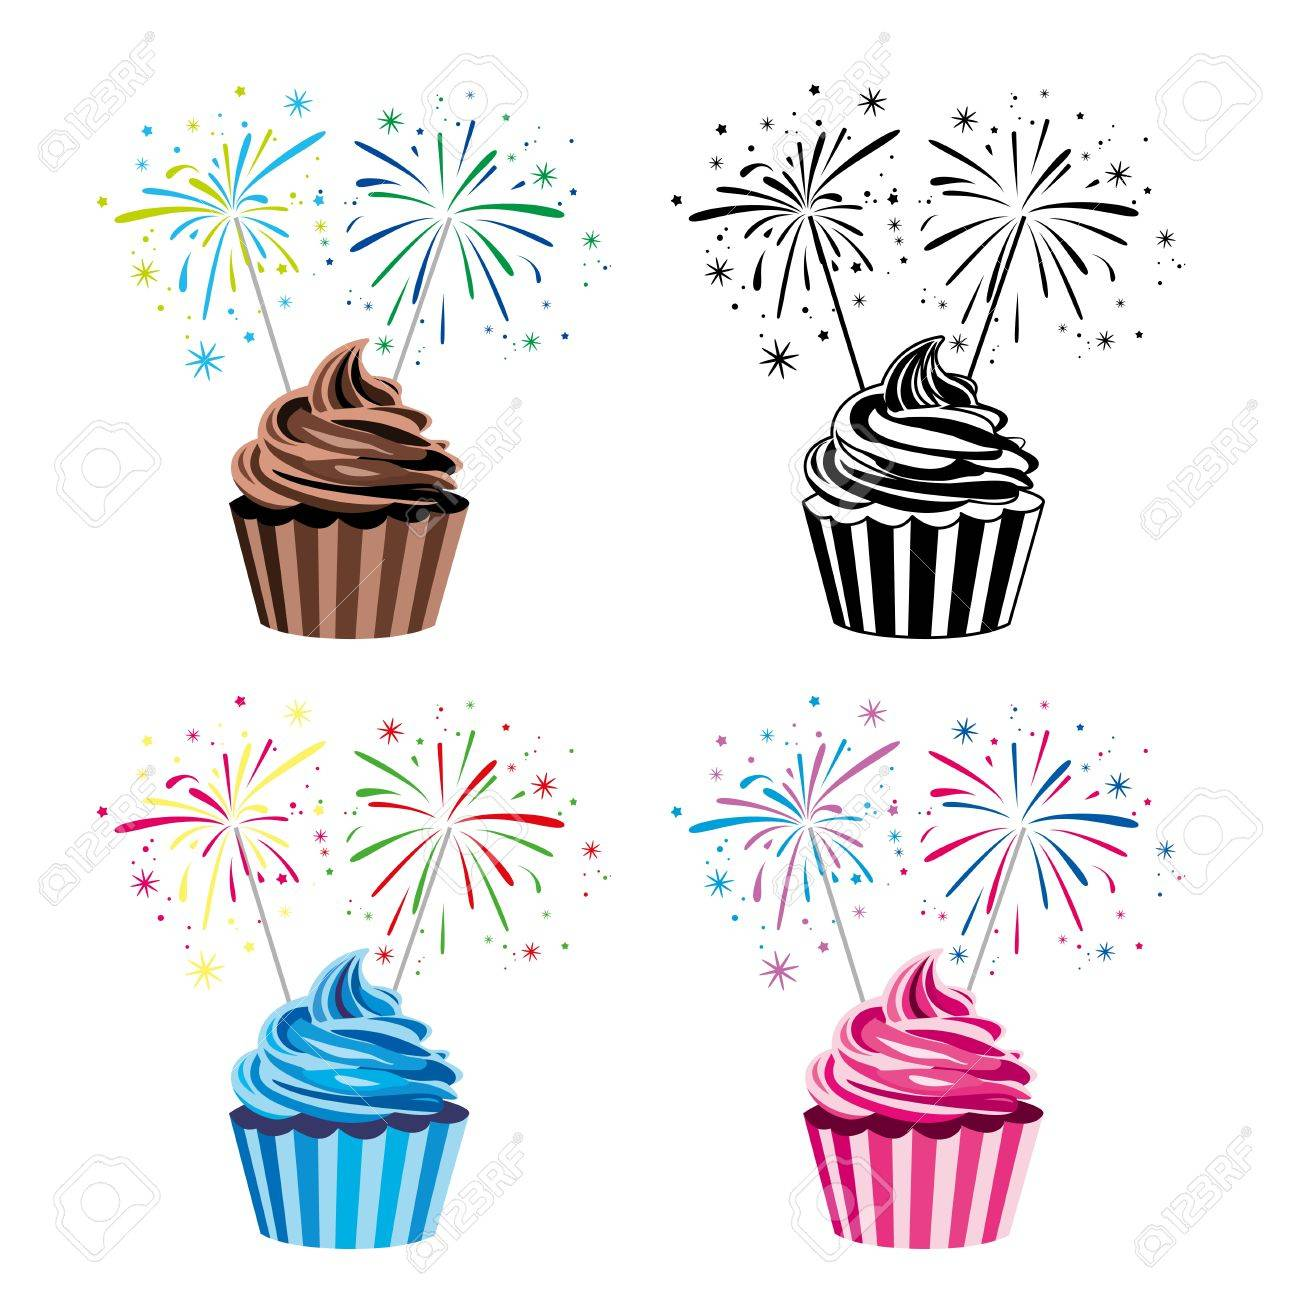 collection of colorful fruit and chocolate birthday cupcakes with burning sparklers Stock Vector - 20302629